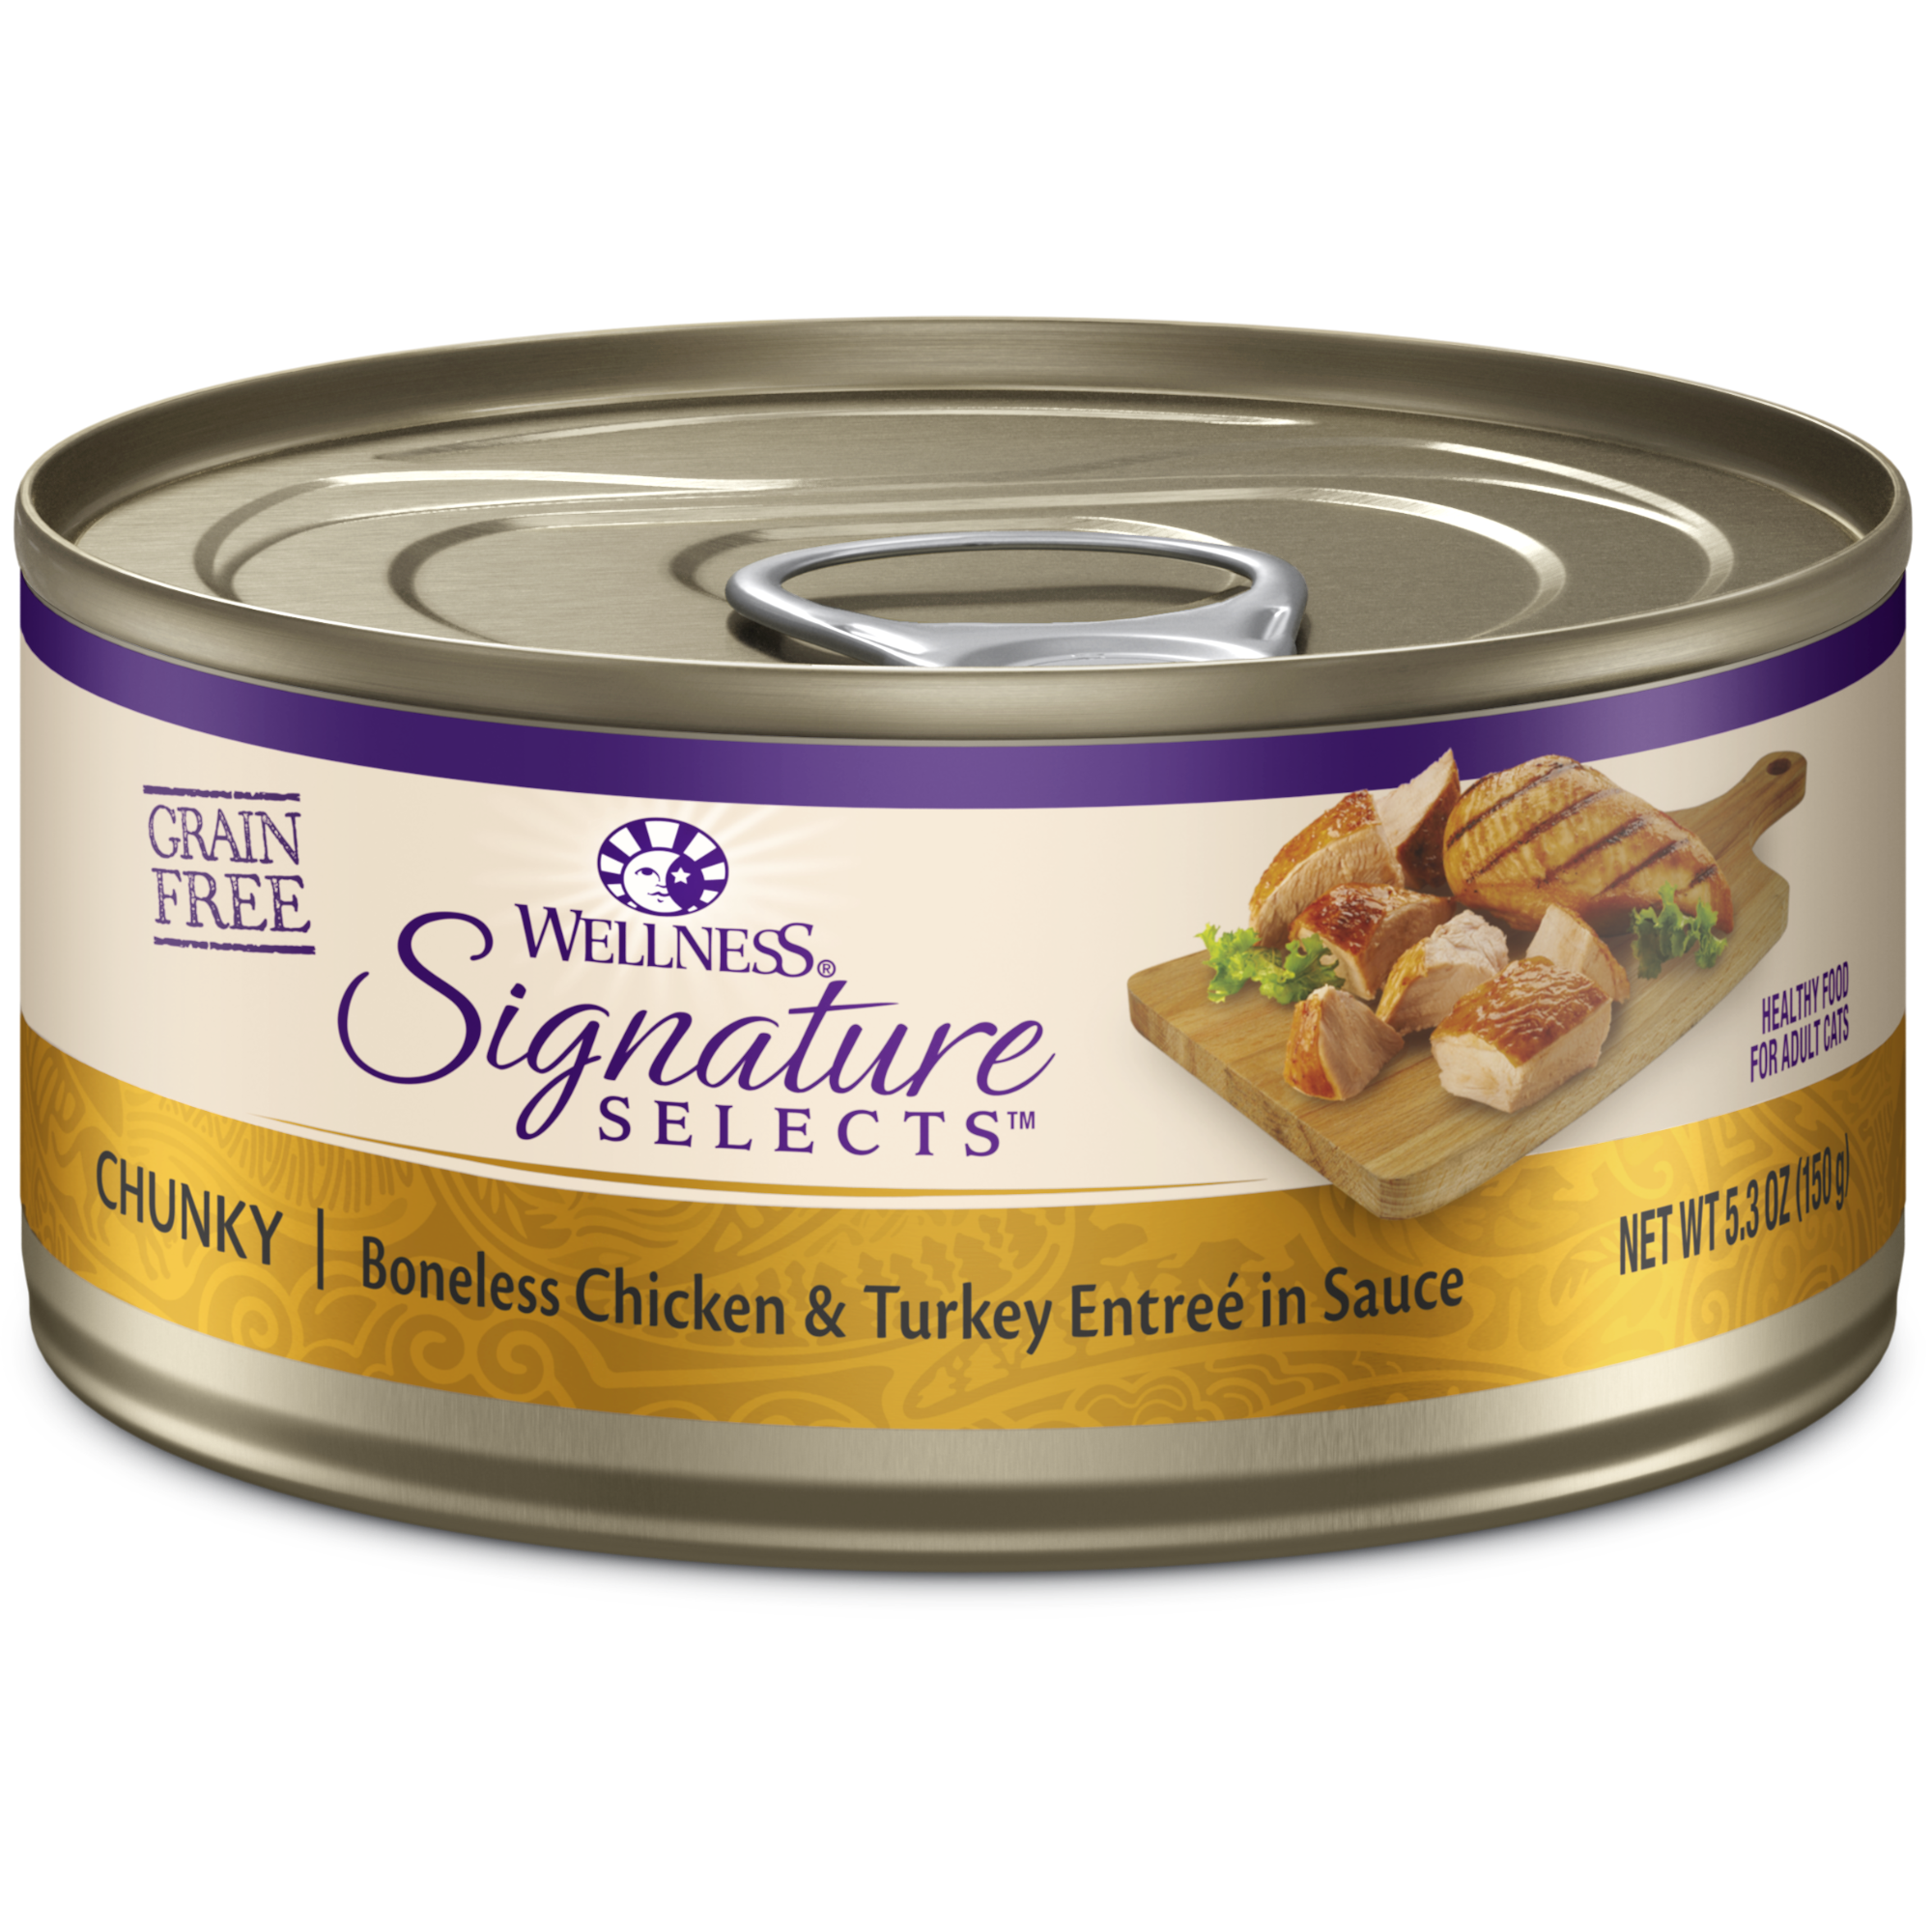 Signature Selects Chunky Chicken Turkey